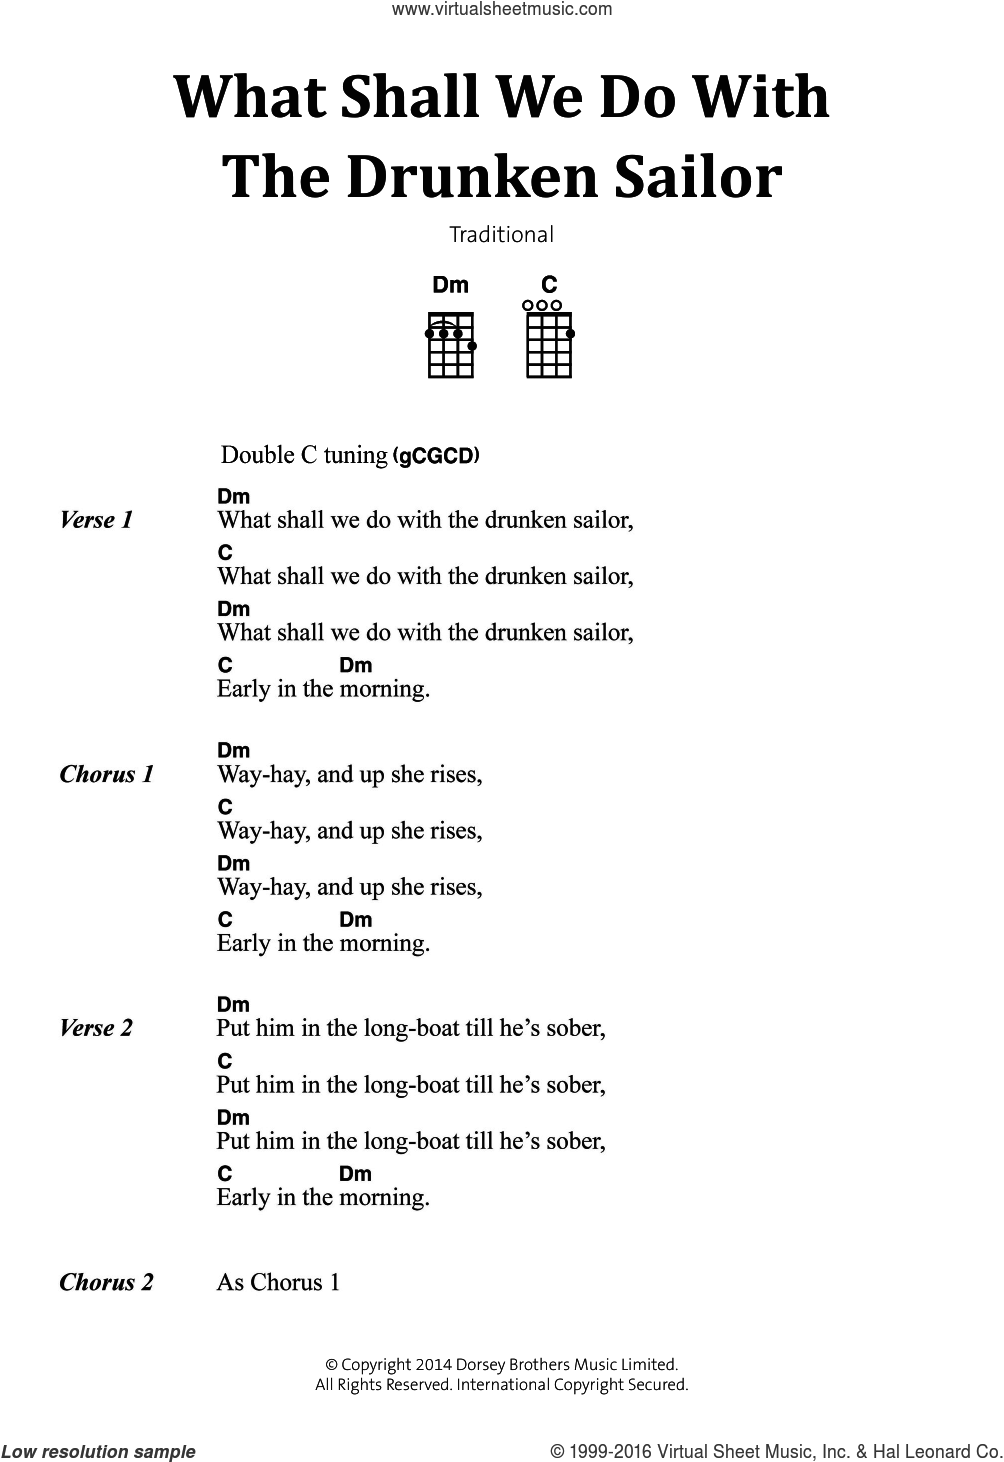 What Shall We Do With The Drunken Sailor sheet music for voice, piano or guitar, intermediate